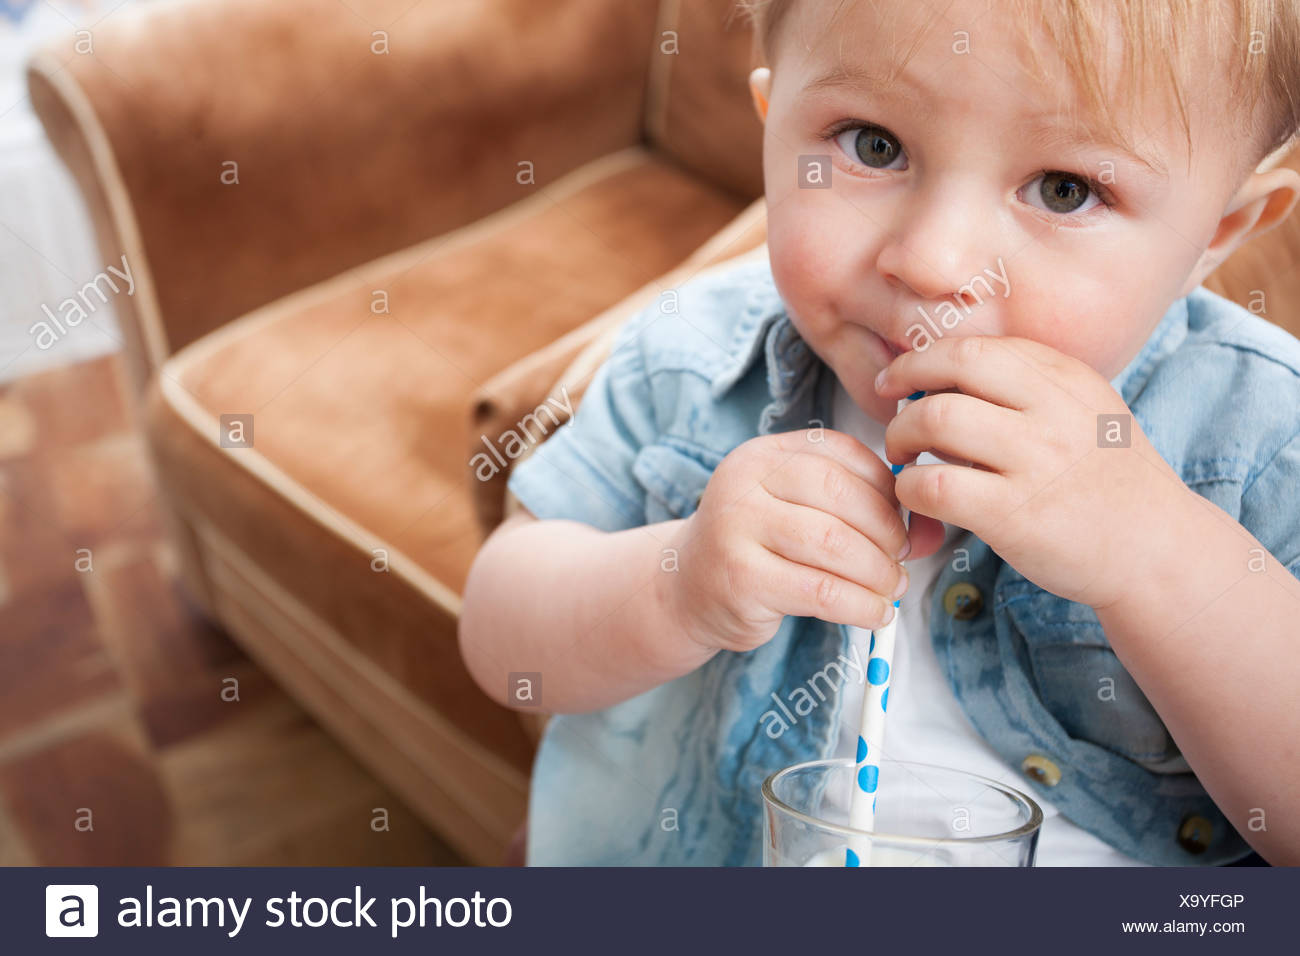 Baby boy drinking milk - Stock Image